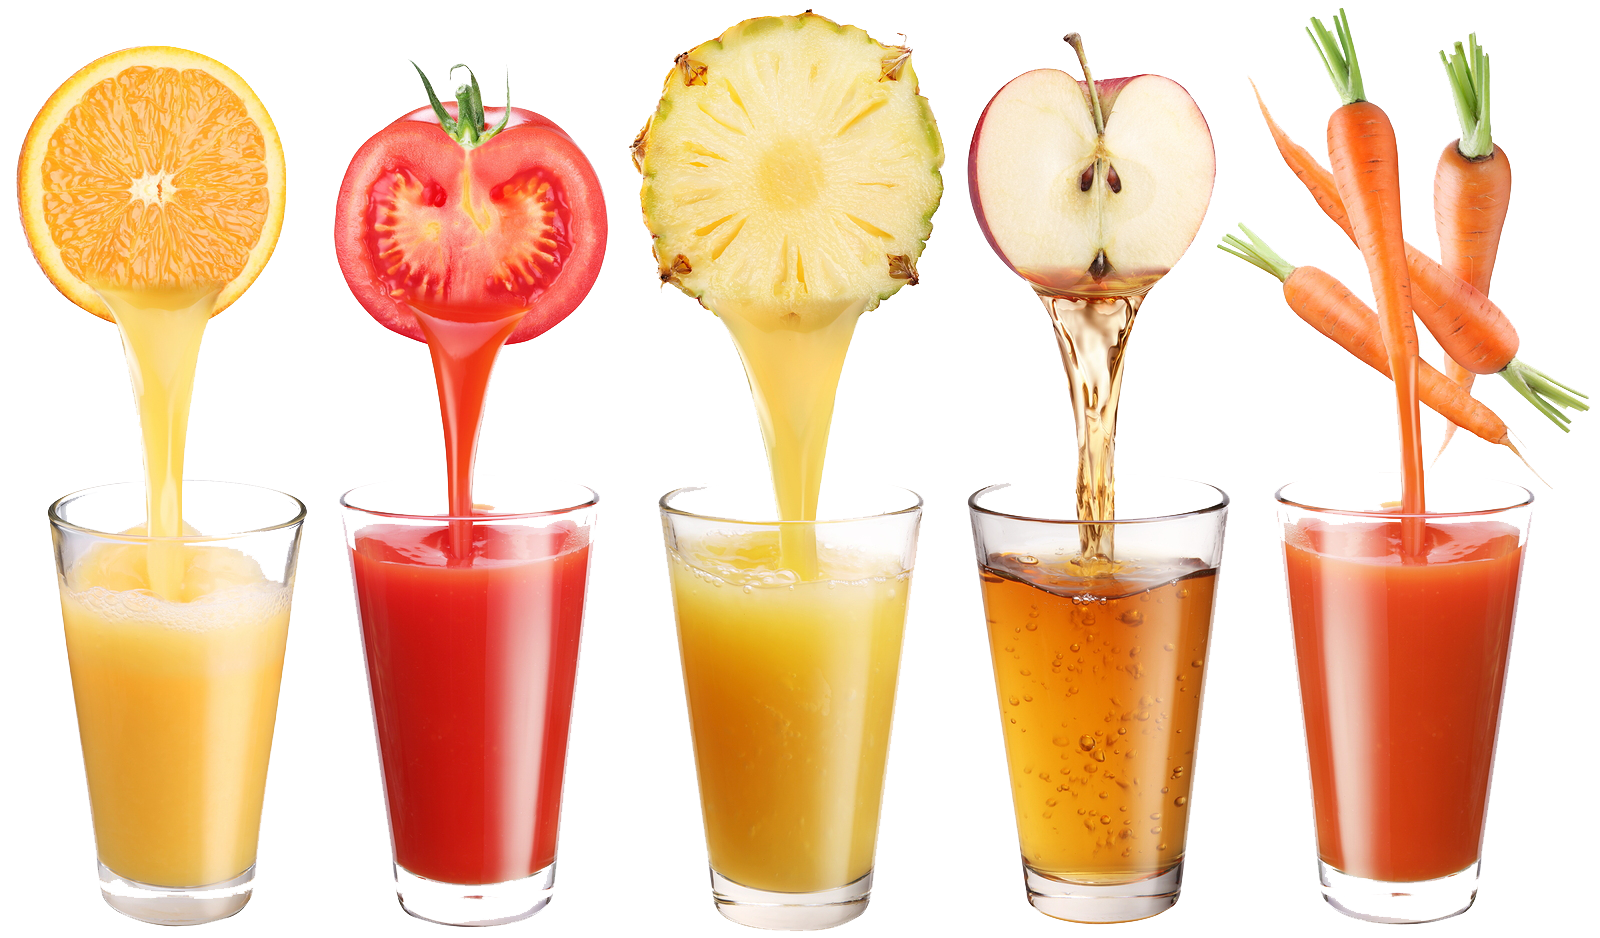 fruits, juice png